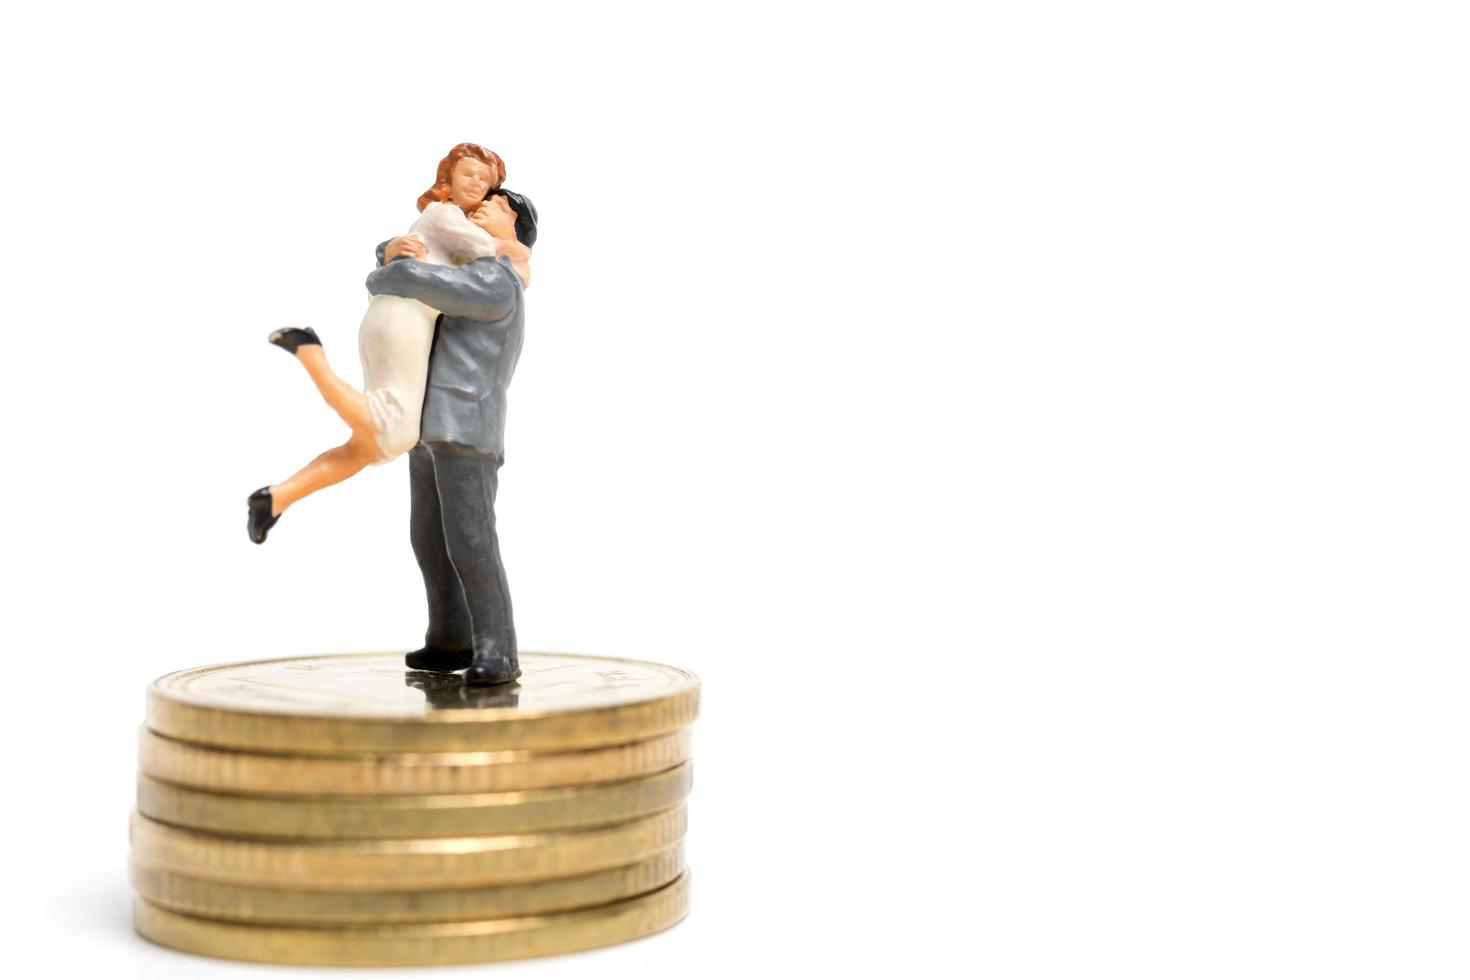 Miniature couple hugging on a stack of coins, money and financial concept photo